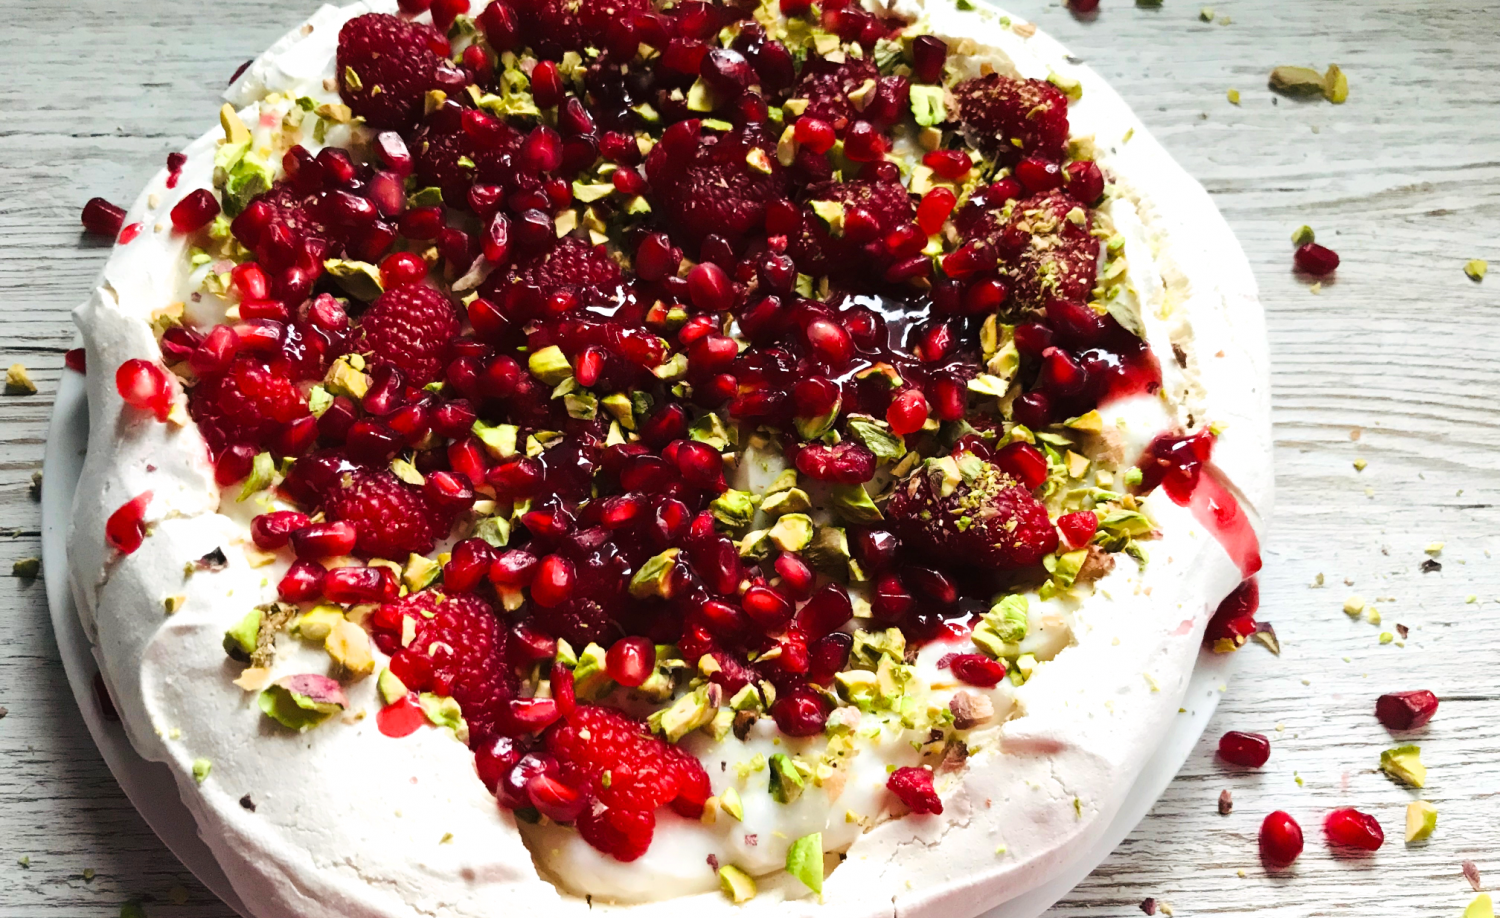 Malabi Rose & Raspberry Vegan Pavlova